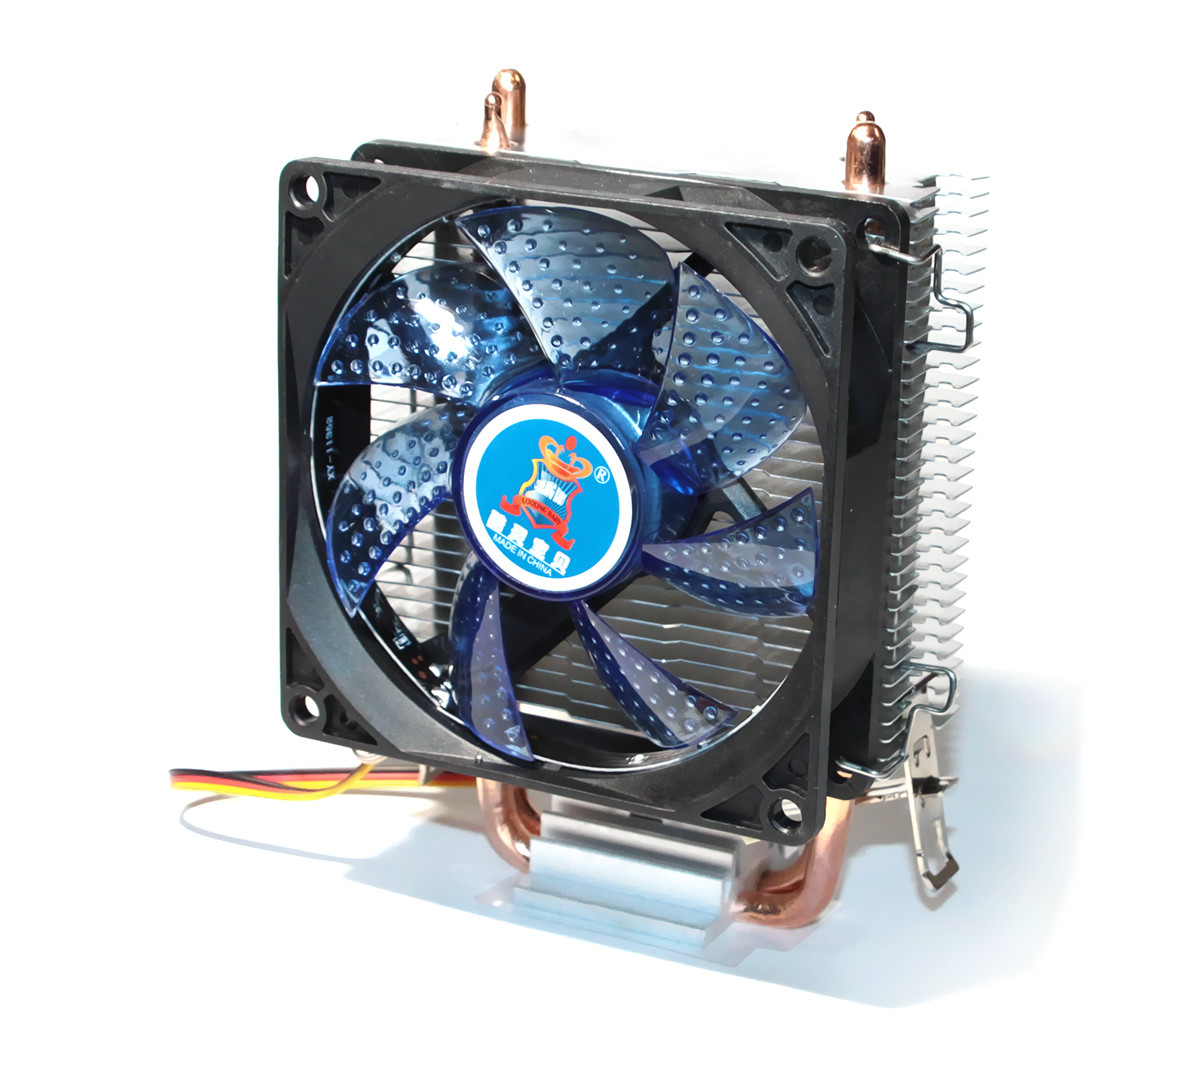 Кулер для процессора Cooling Baby R90 BLUE LED LGA 1150/1151/1155/1156/775, FM1/FM2/AM2/AM2+/AM3/AM3+/AM4